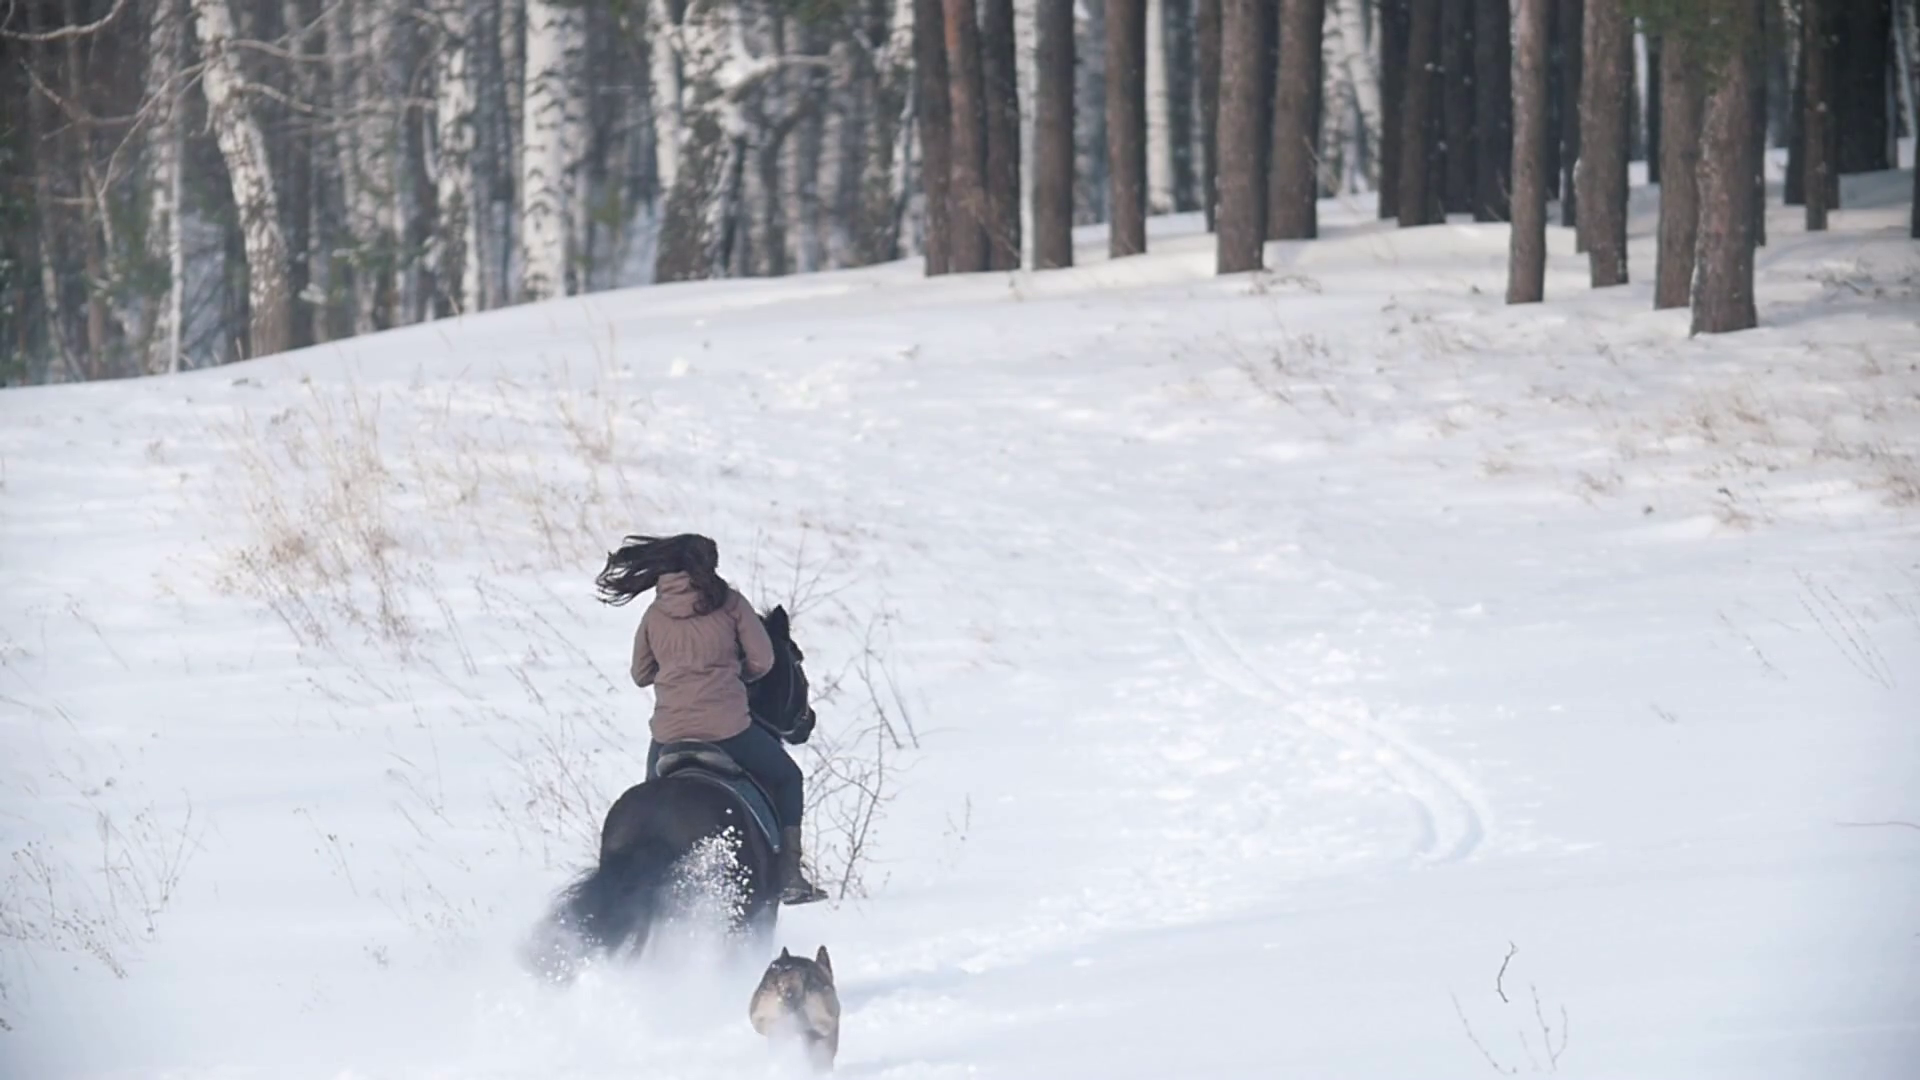 Female Rider Fast Riding Black Horse Through The Snow Dog Running Nearby Stock Video Footage Storyblocks